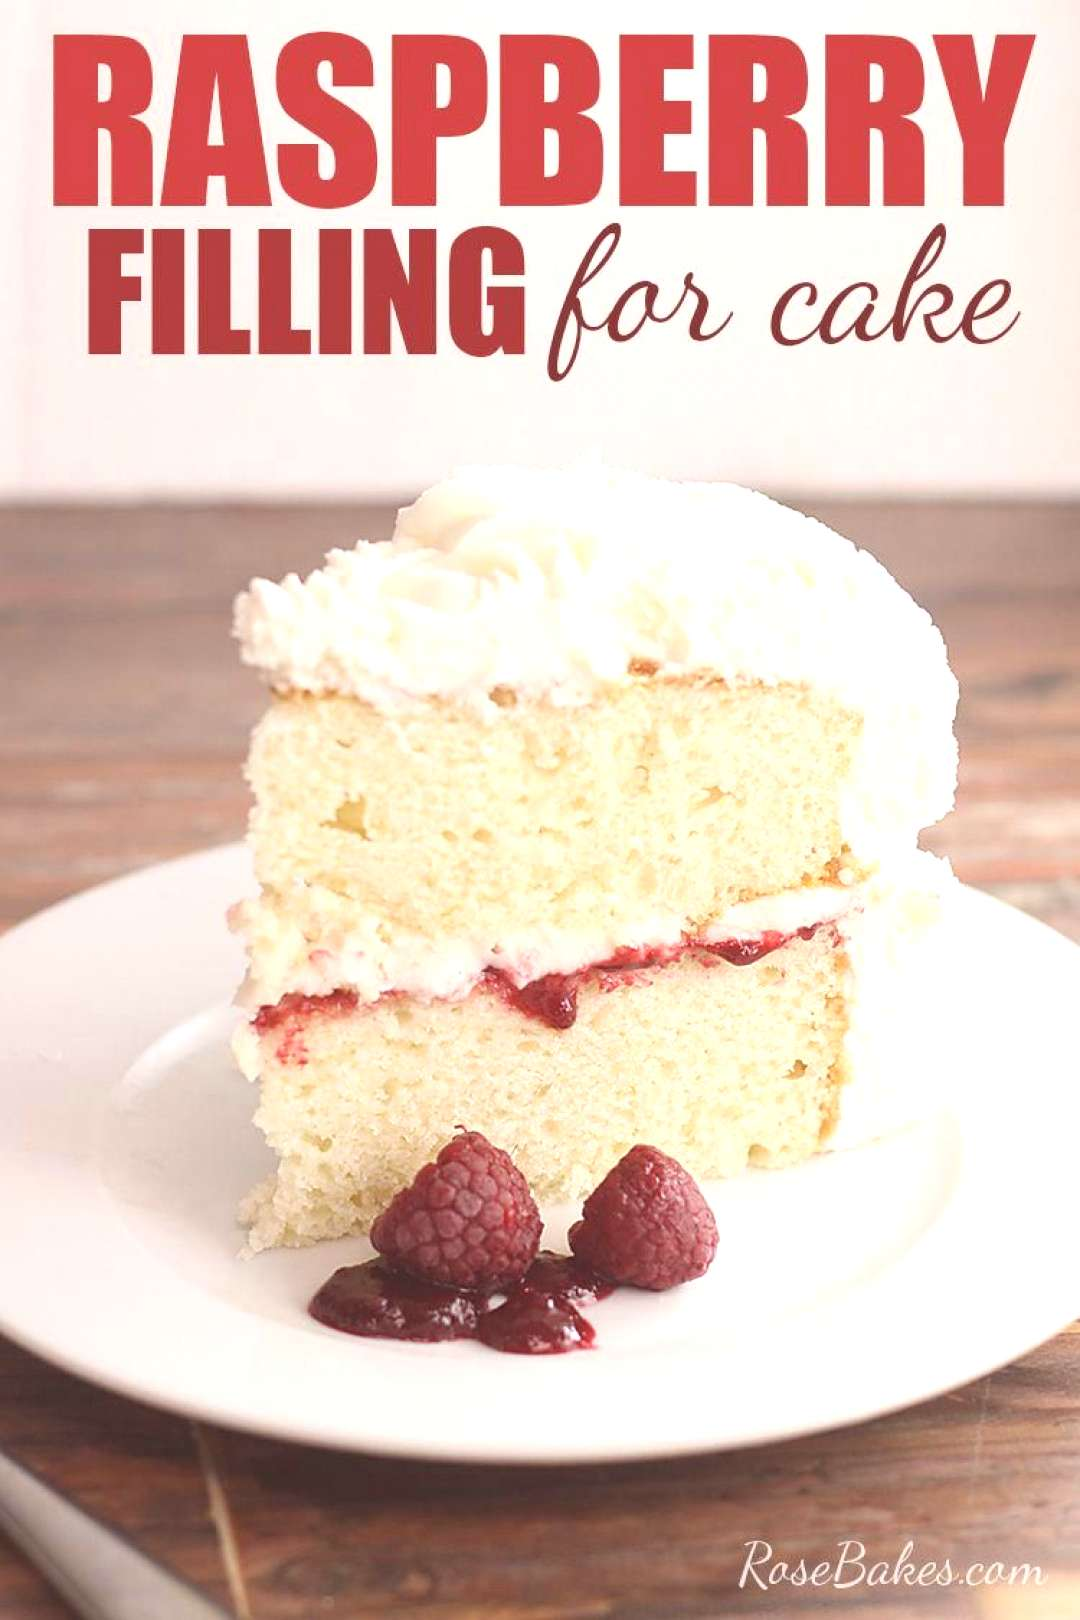 Delicious and easy, this Raspberry Filling for Cakes is perfectly tart and sweet and spreads beauti